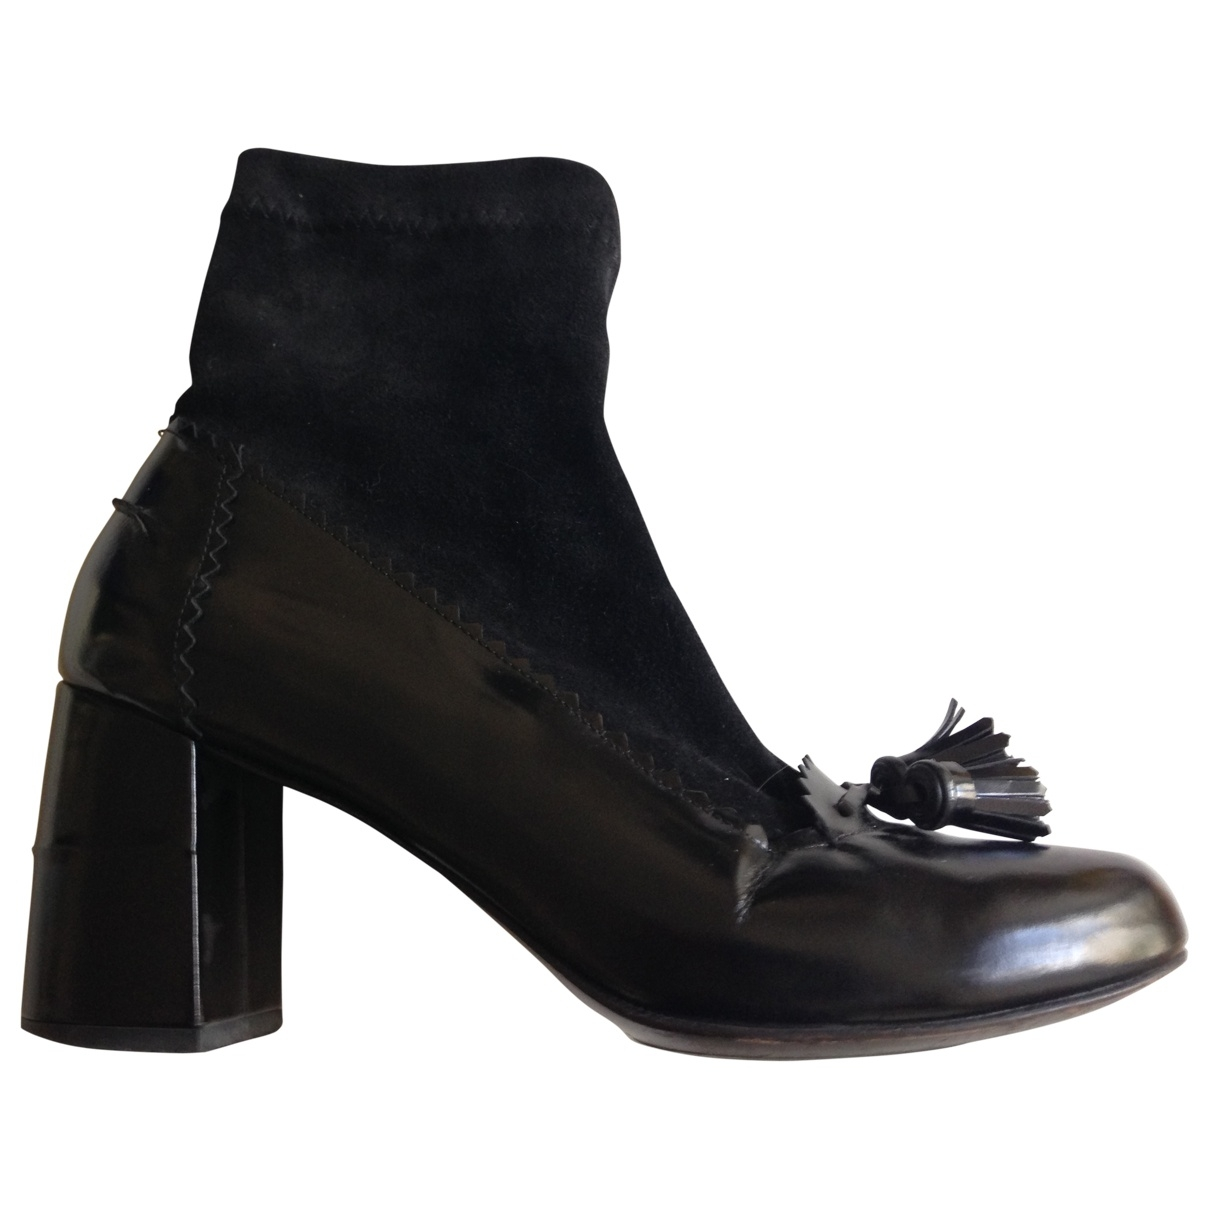 Robert Clergerie \N Black Leather Ankle boots for Women 5.5 UK